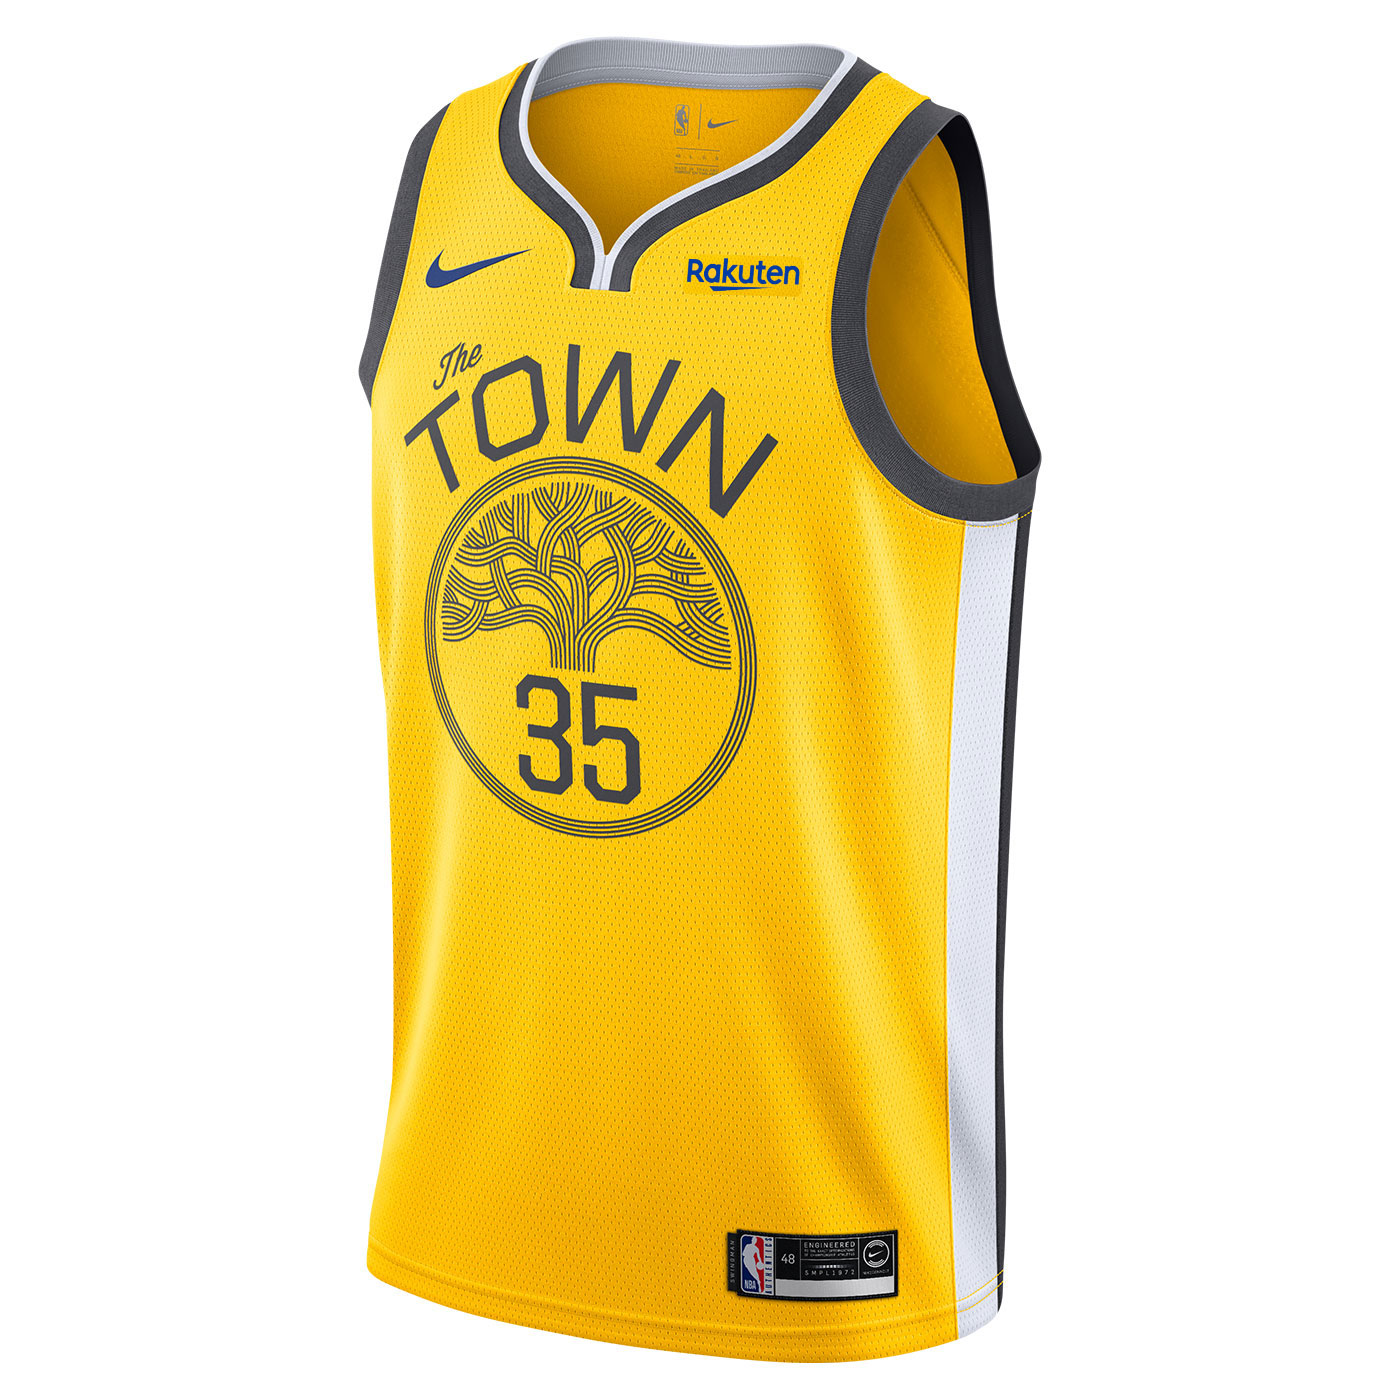 a4332ab3b ... nba youth hardwood classic swingman jersey lids fdbeb 510b7   switzerland warriors earned edition town jerseys by nike which will be  unveiled dec.